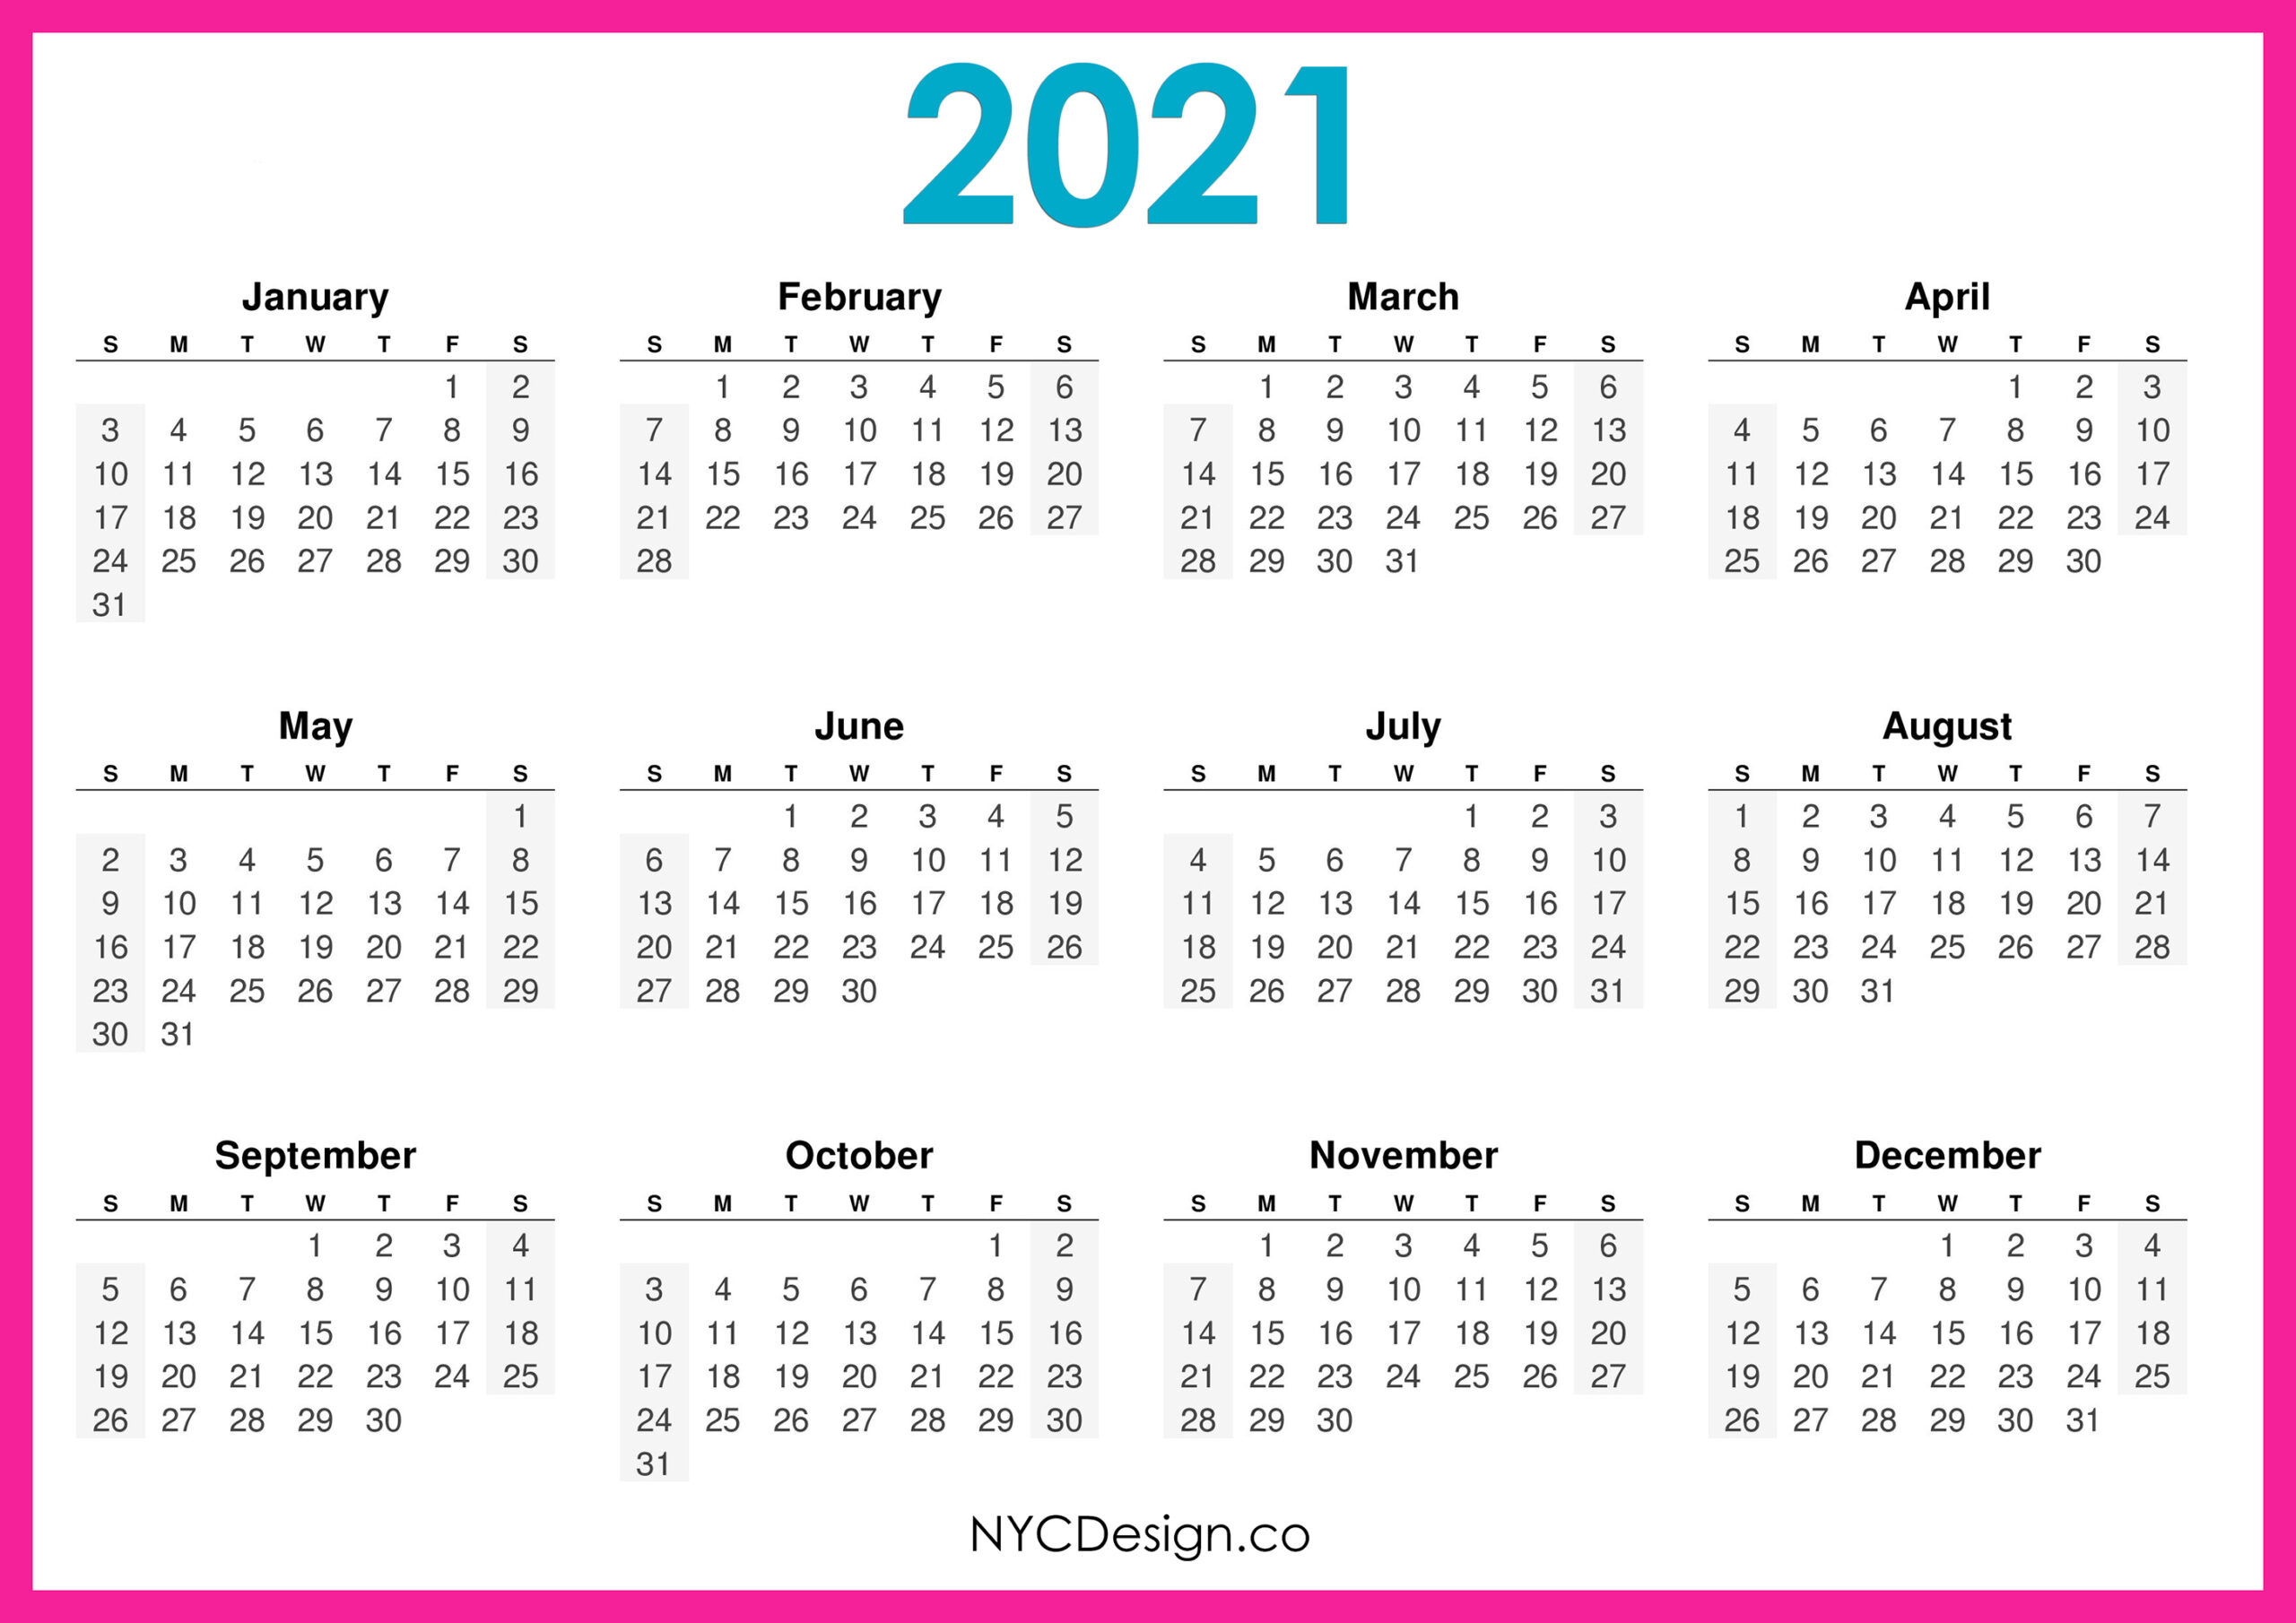 Free 2021 Yearly Calender Template  12 Month Colorful with Desktop Calendars 2021 Free Printable